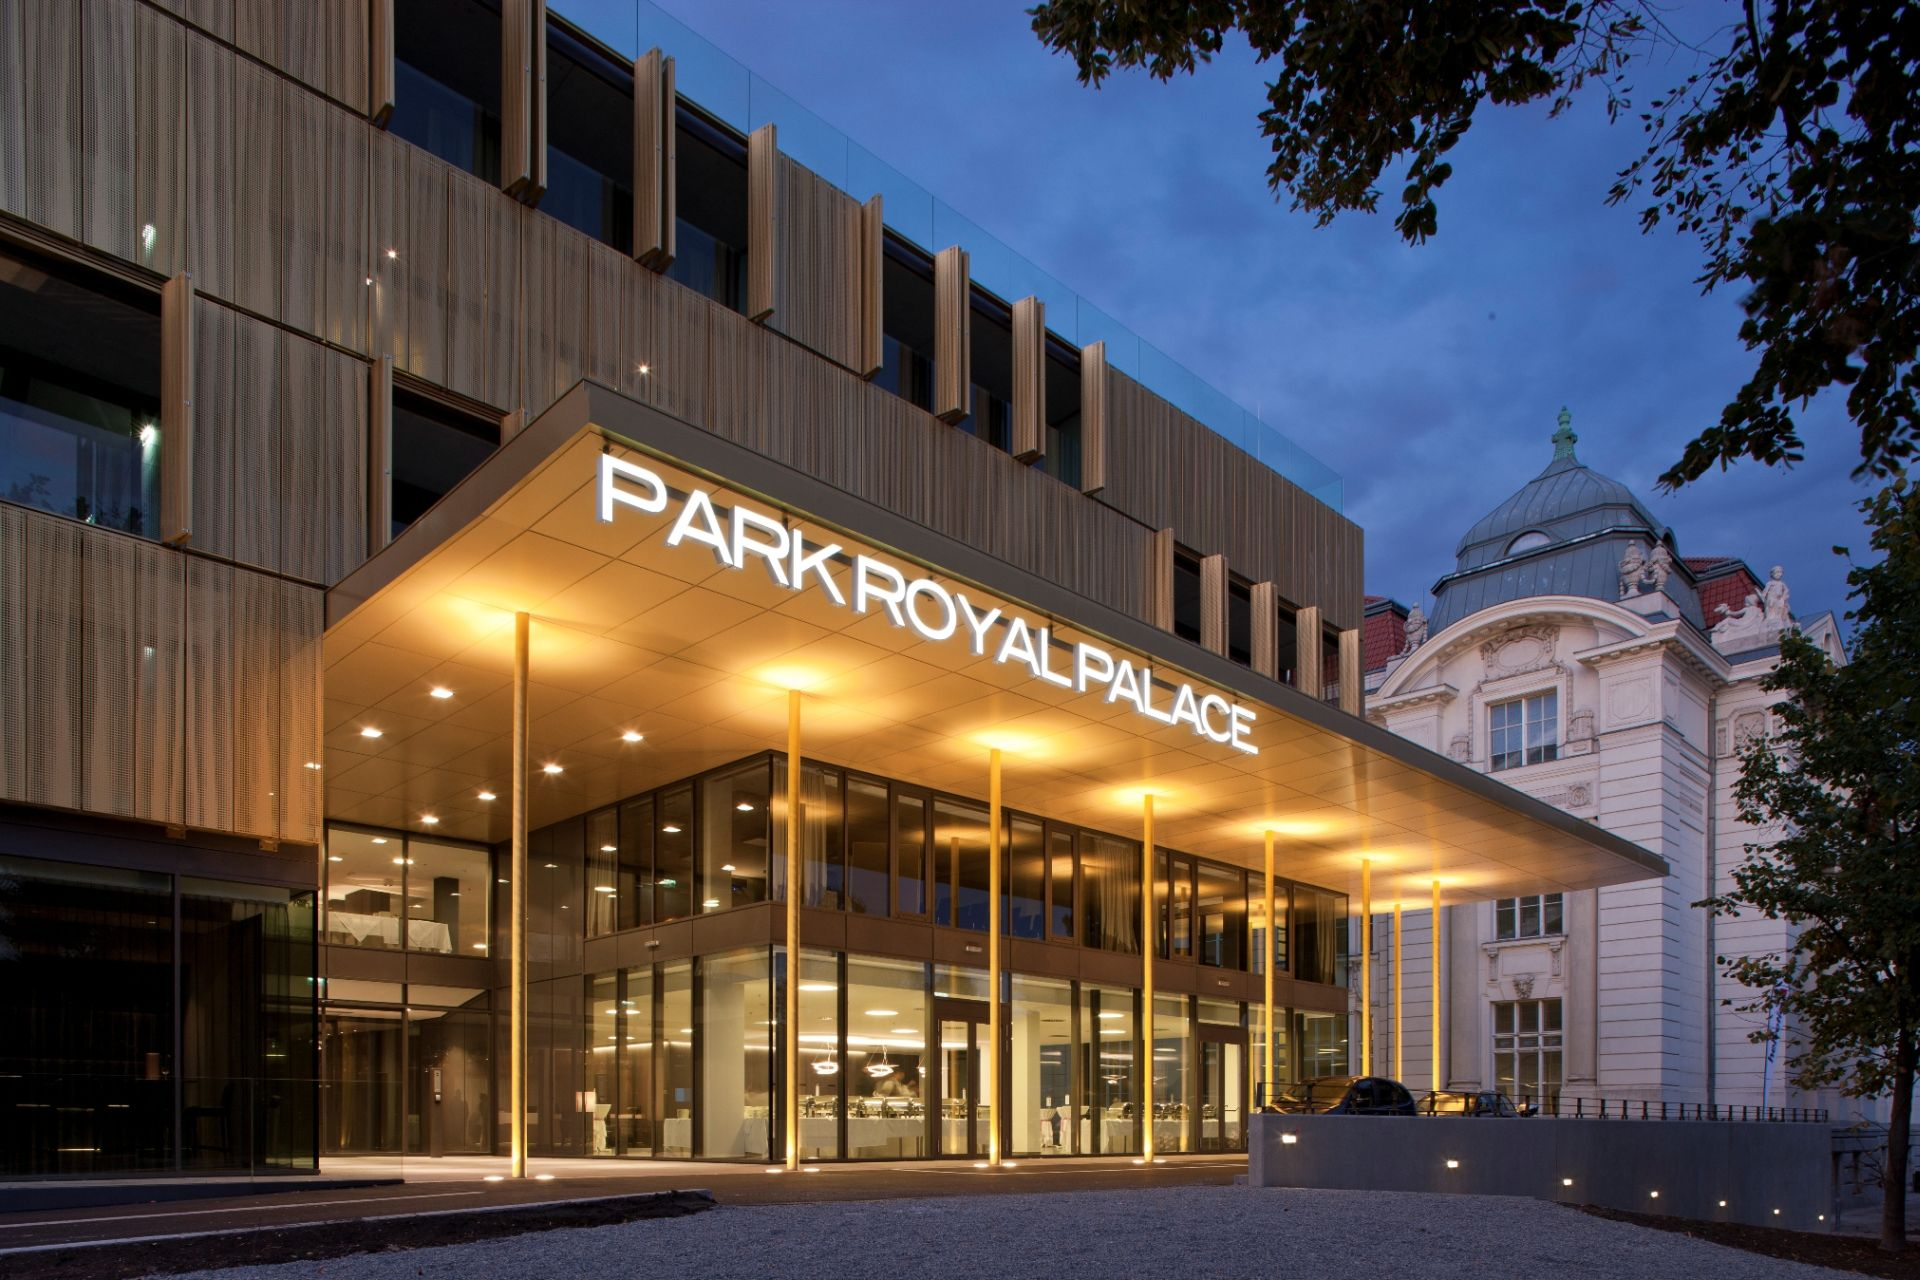 Radisson blu park royal palace hotel ska hotels for Hotel royal